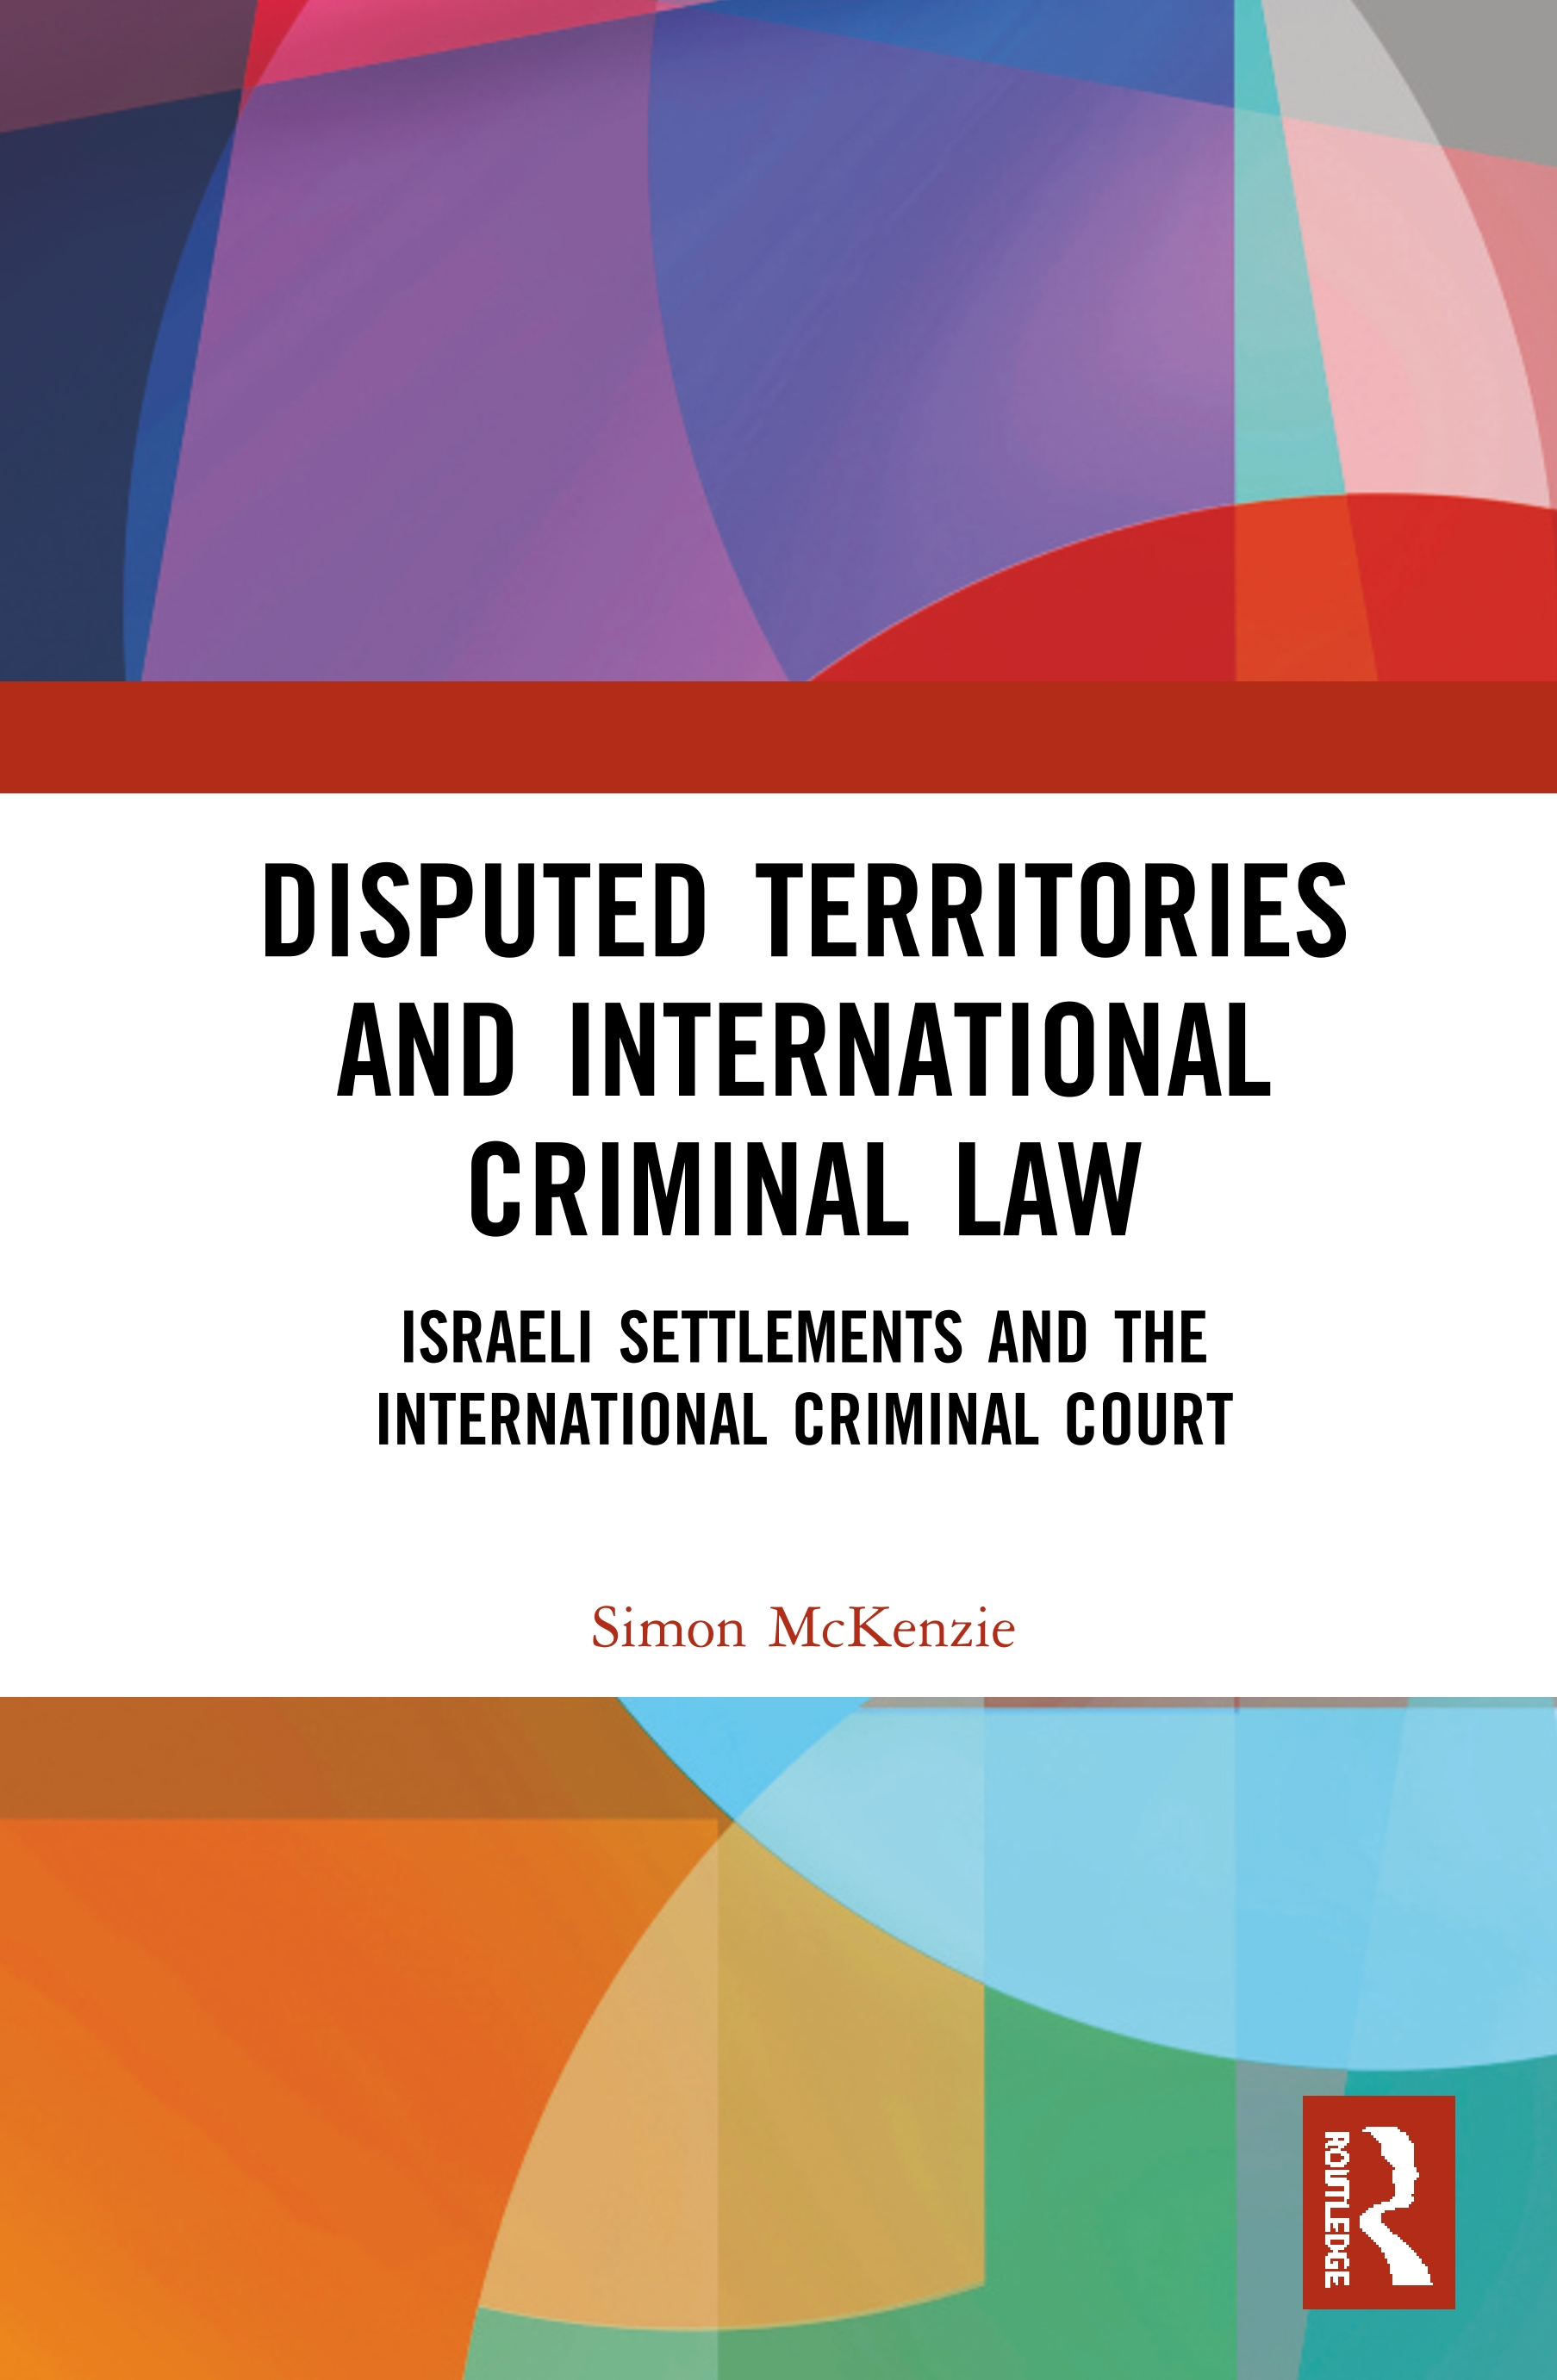 Disputed Territories and International Criminal Law: Israeli Settlements and the International Criminal Court book cover